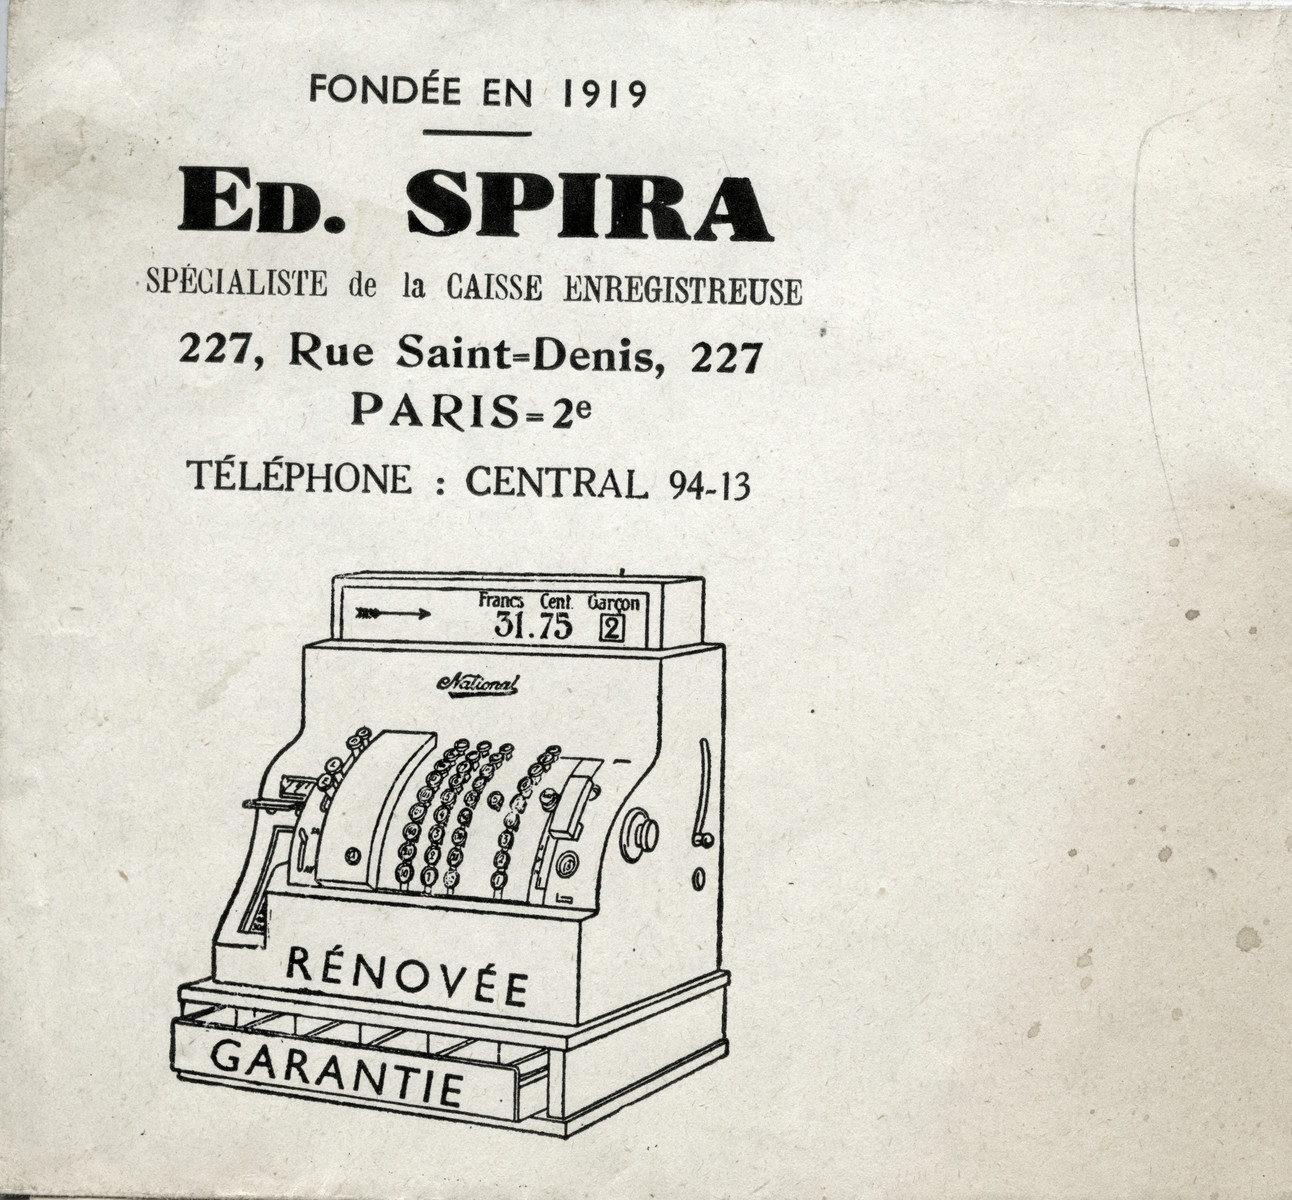 Business card for Eduard Spira's cash register company.